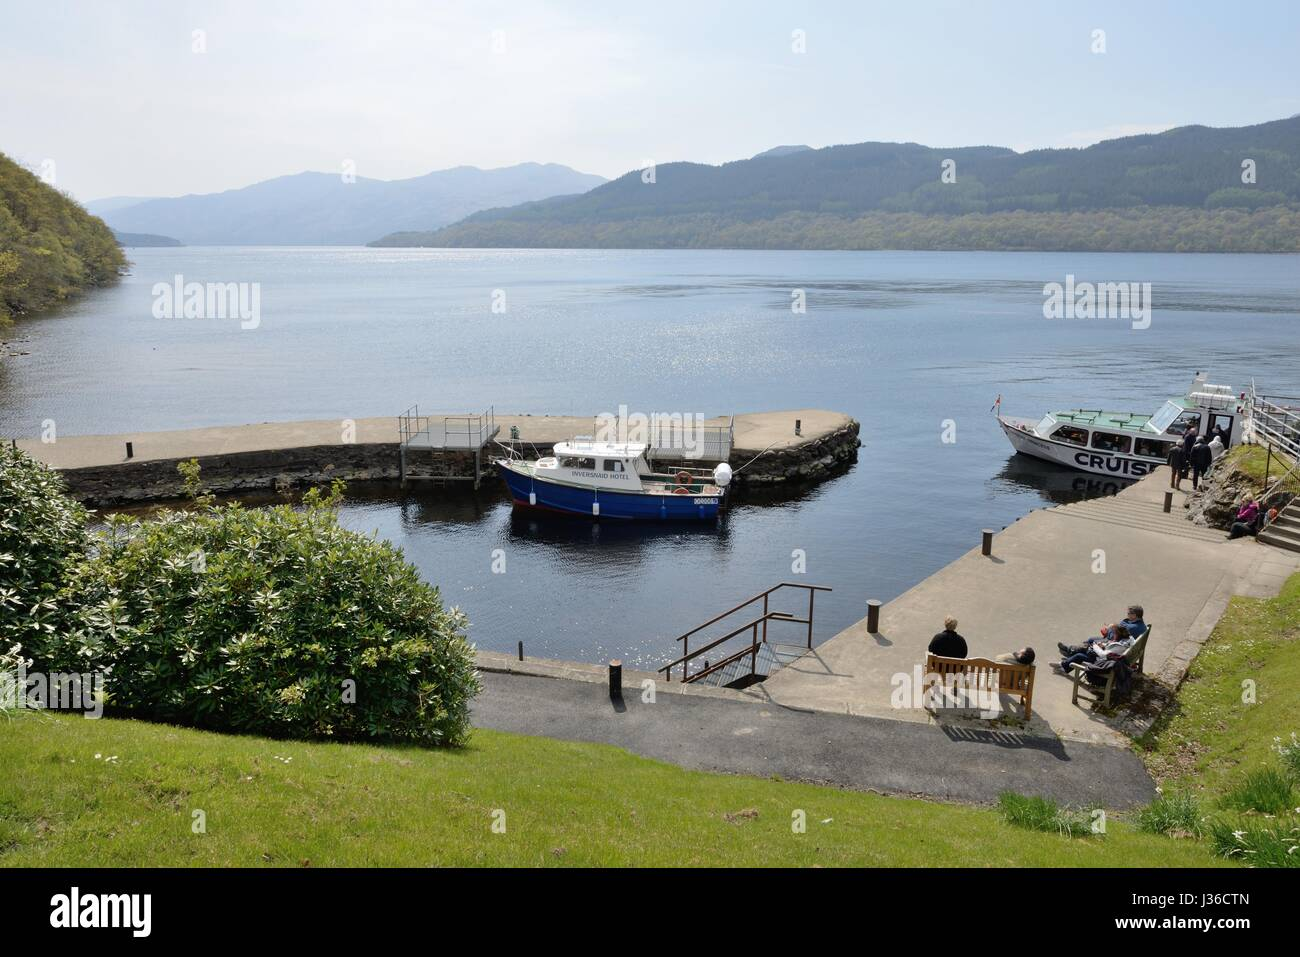 Overlooking Inversnaid pier on a calm sunny spring day on Loch Lomond, Scotland, UK - Stock Image